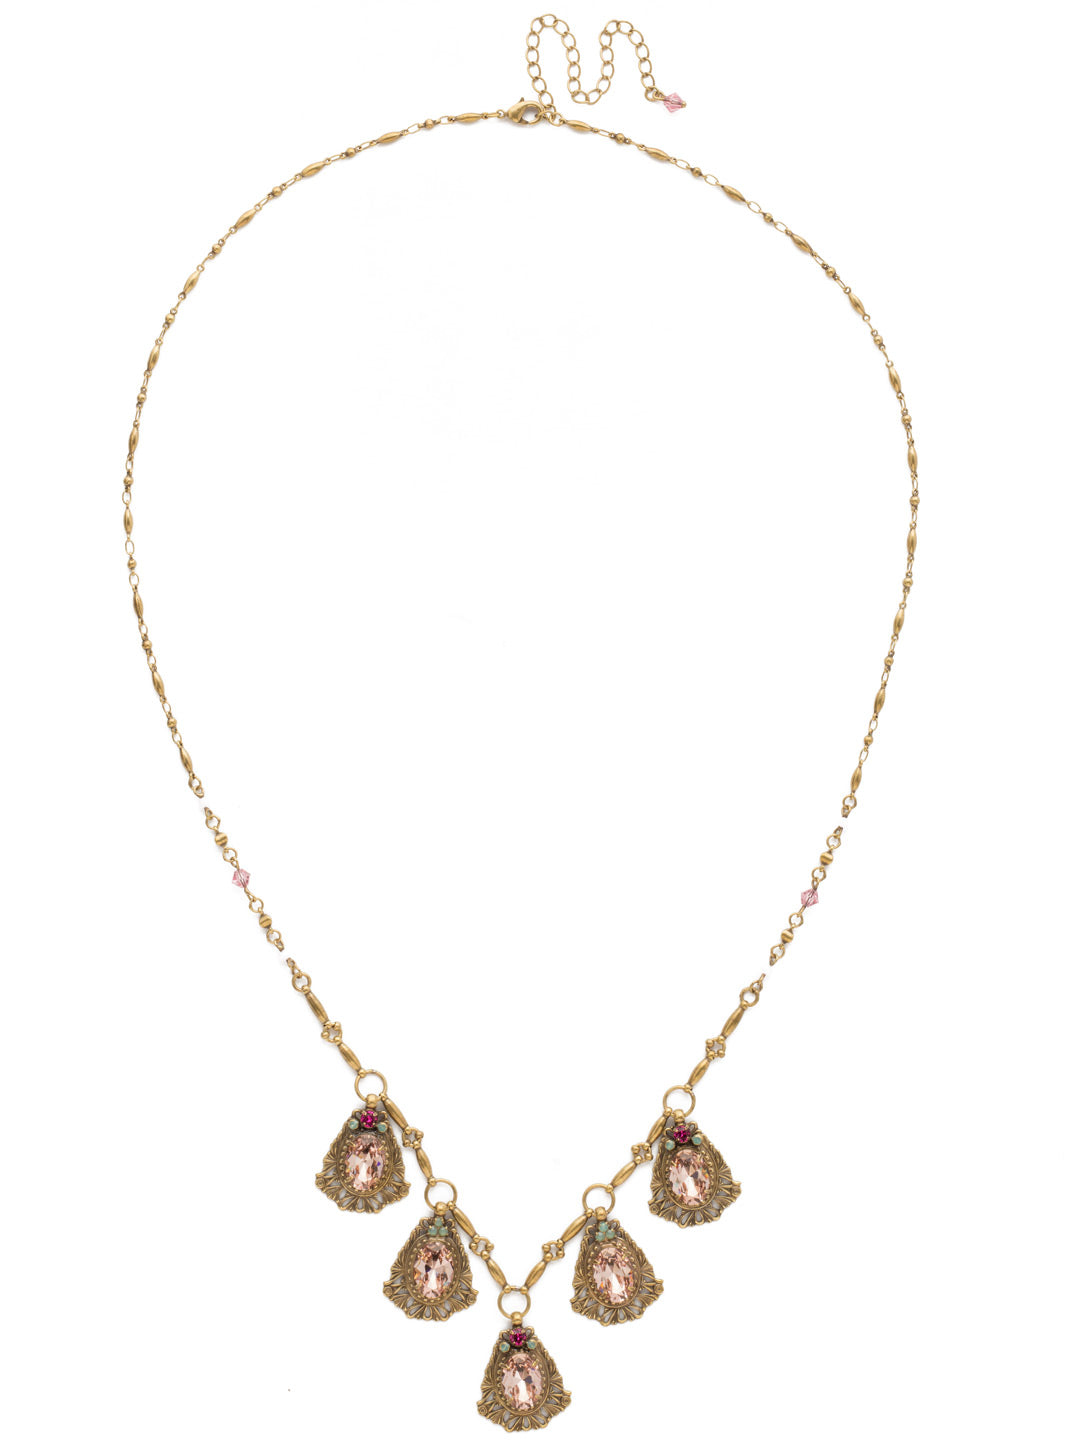 Aconitum Necklace - NDS4AGRS